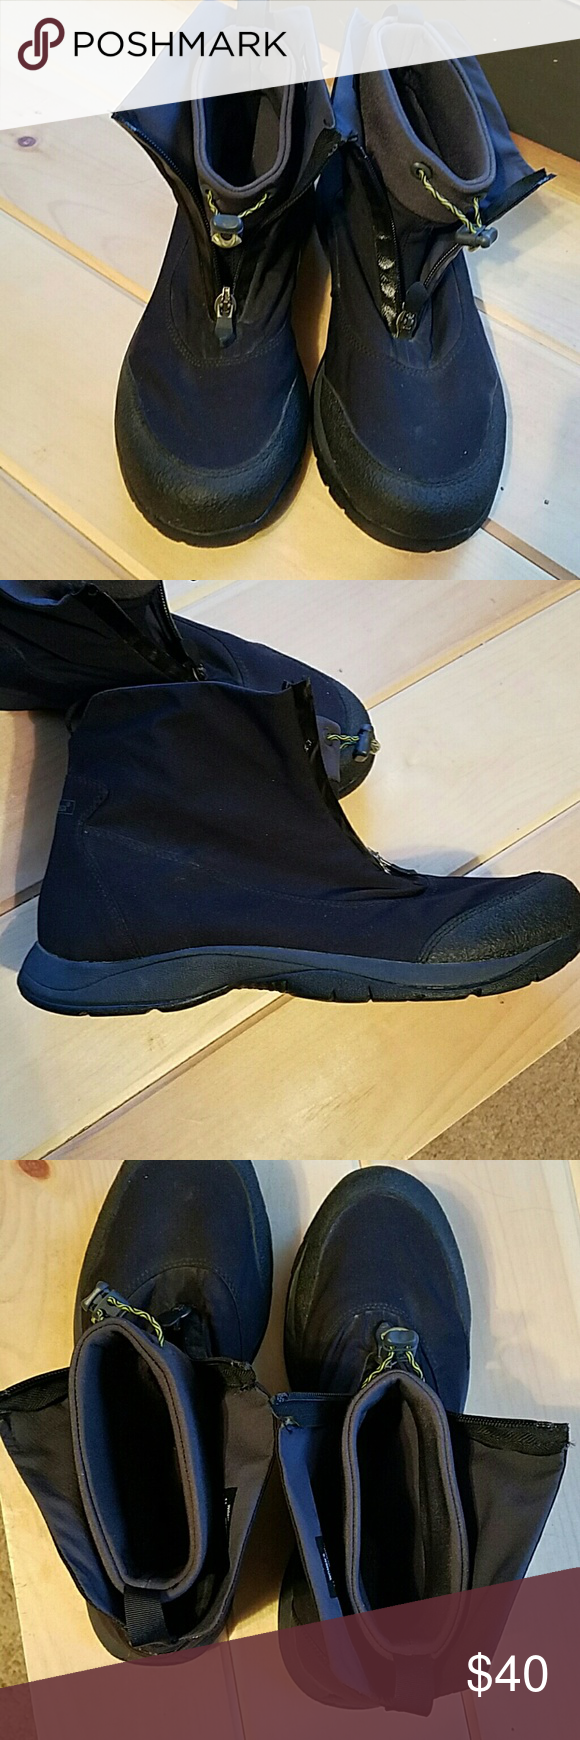 Woman's LLBEAN boots Very well made. Lightweight. Built in liners with zip up front. Nothing wrong with these. L.L. Bean Shoes Winter & Rain Boots